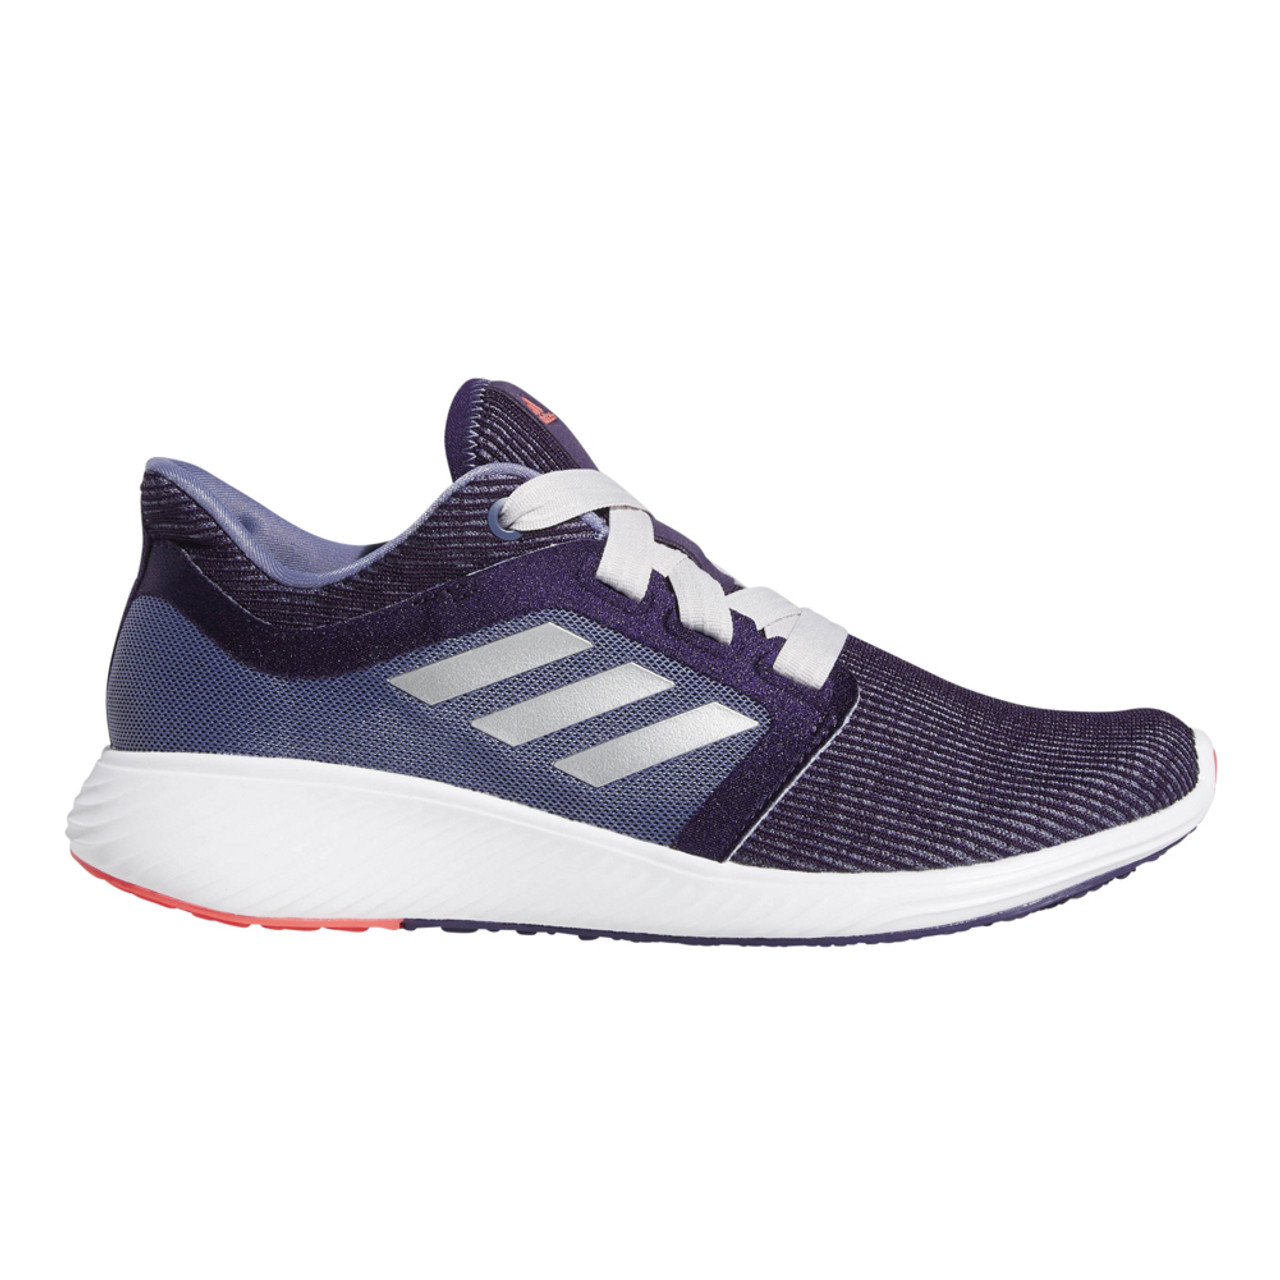 Adidas Women s Edge Lux 3 Running Shoe Purple Silver - Shop now   Shoolu. 2de3d7e14